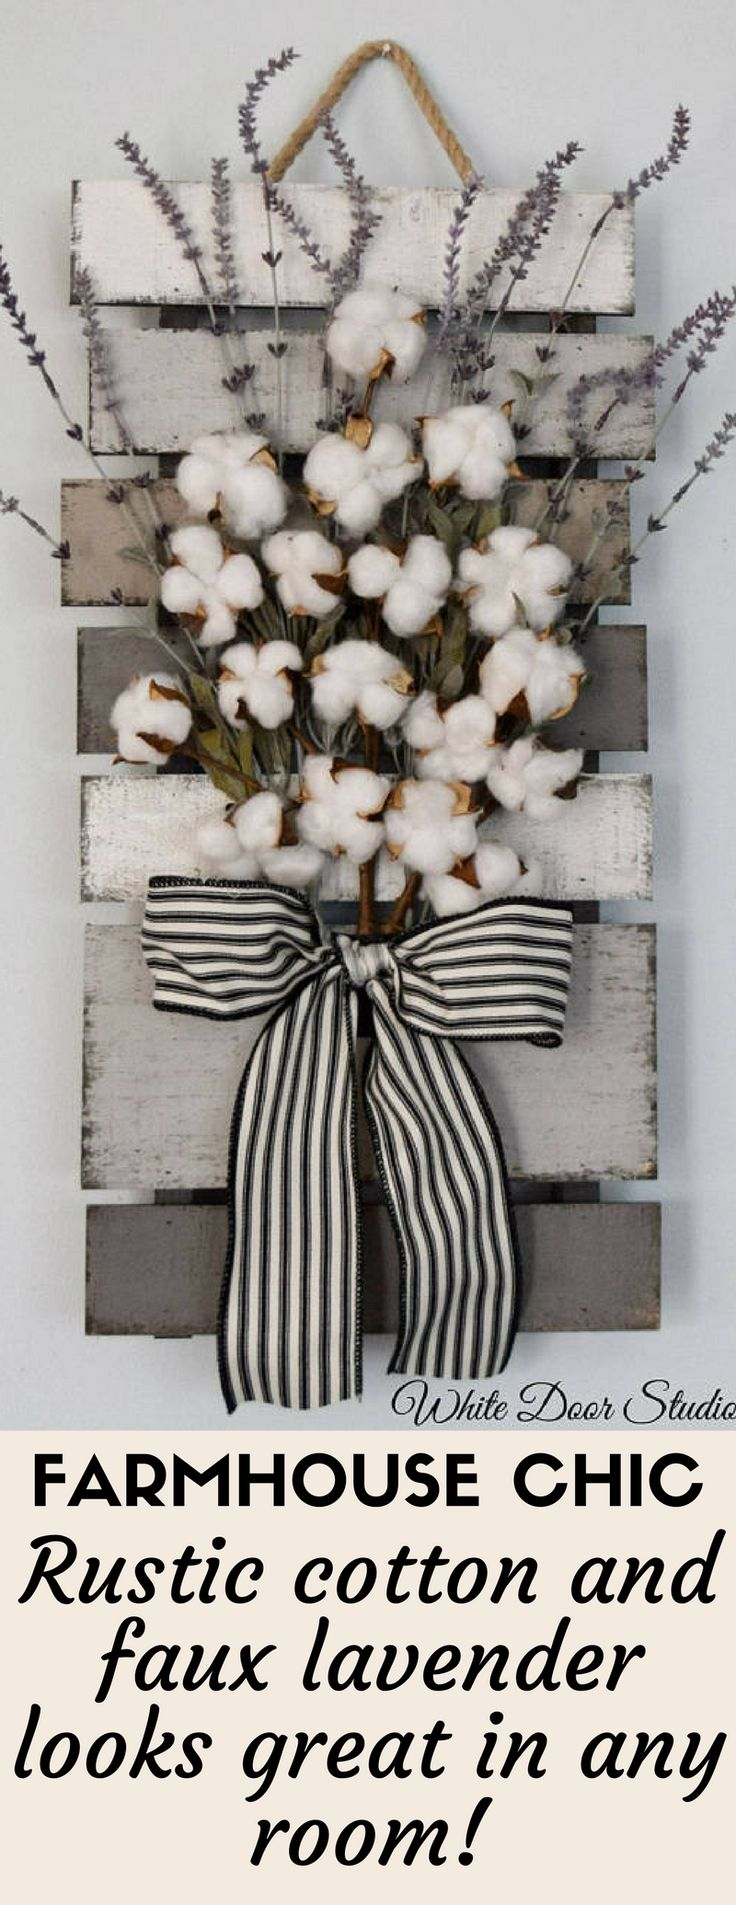 Farmhouse Decor - This Cotton and Lavender Wall Hanging is backed with pallet wood and looks stunning anywhere in your house! This is my referral link so I receive a small commission at no cost to you if you buy xoxo